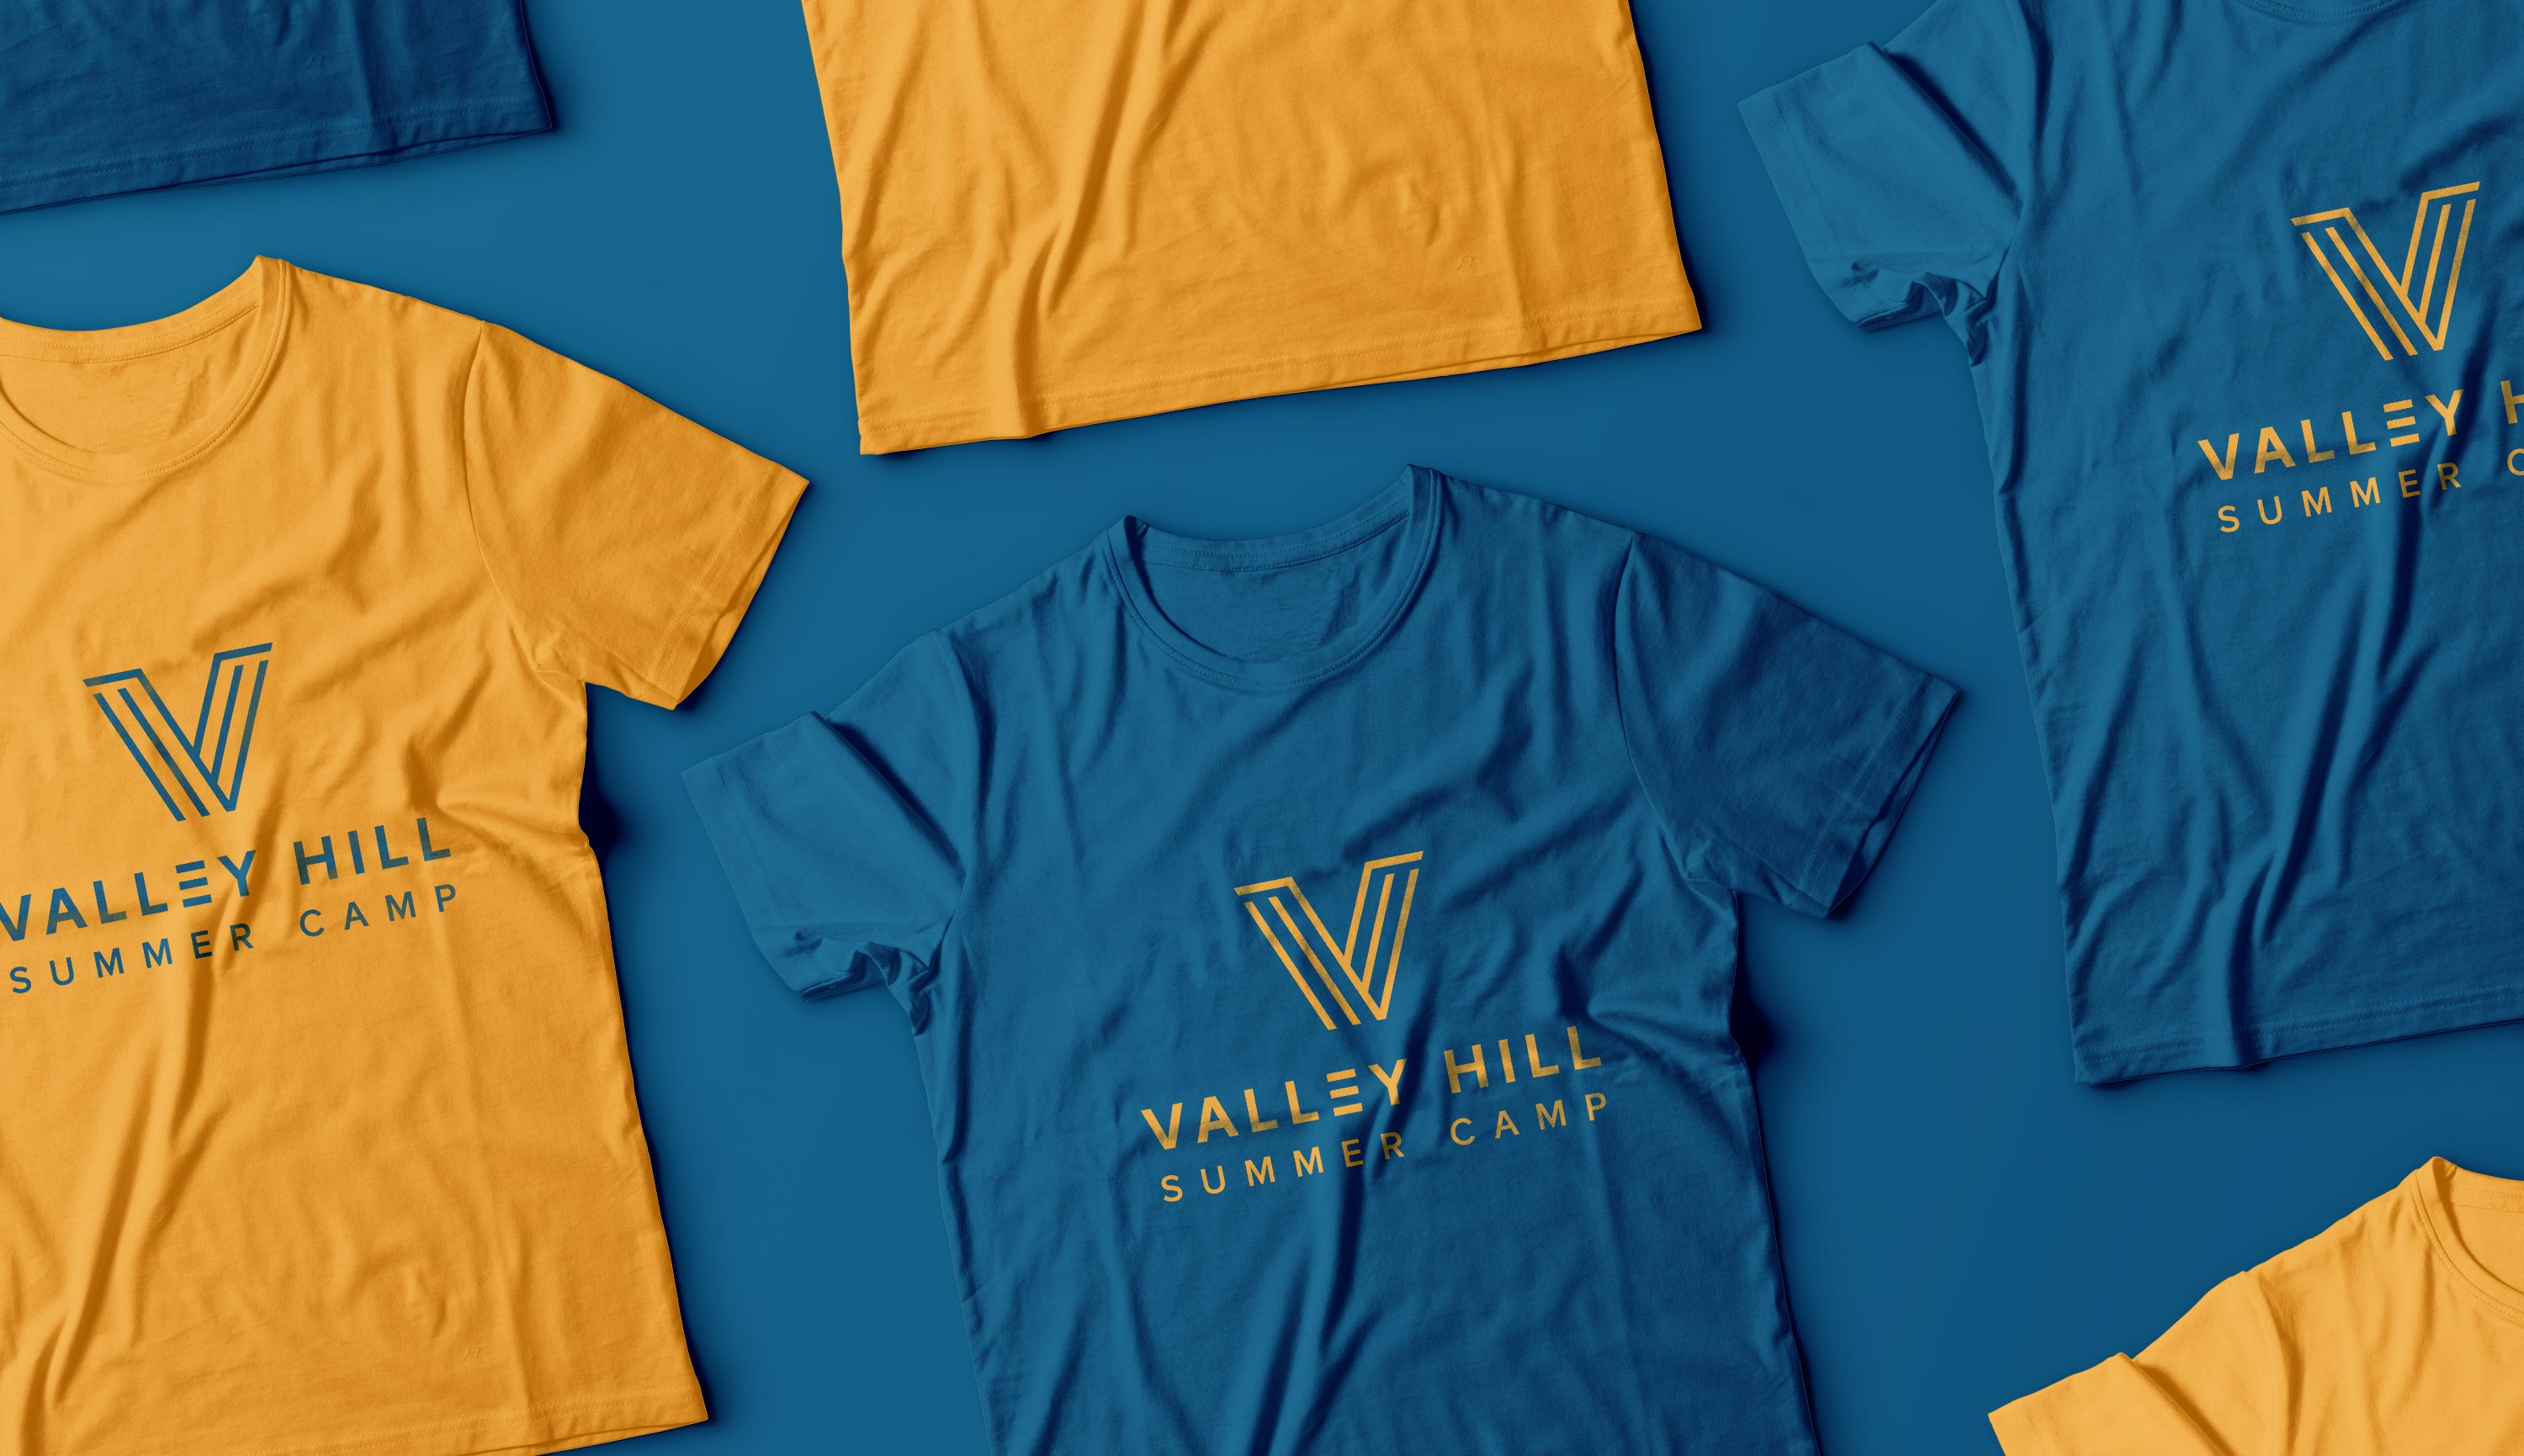 Valley Hill Summer Camp t-shirts